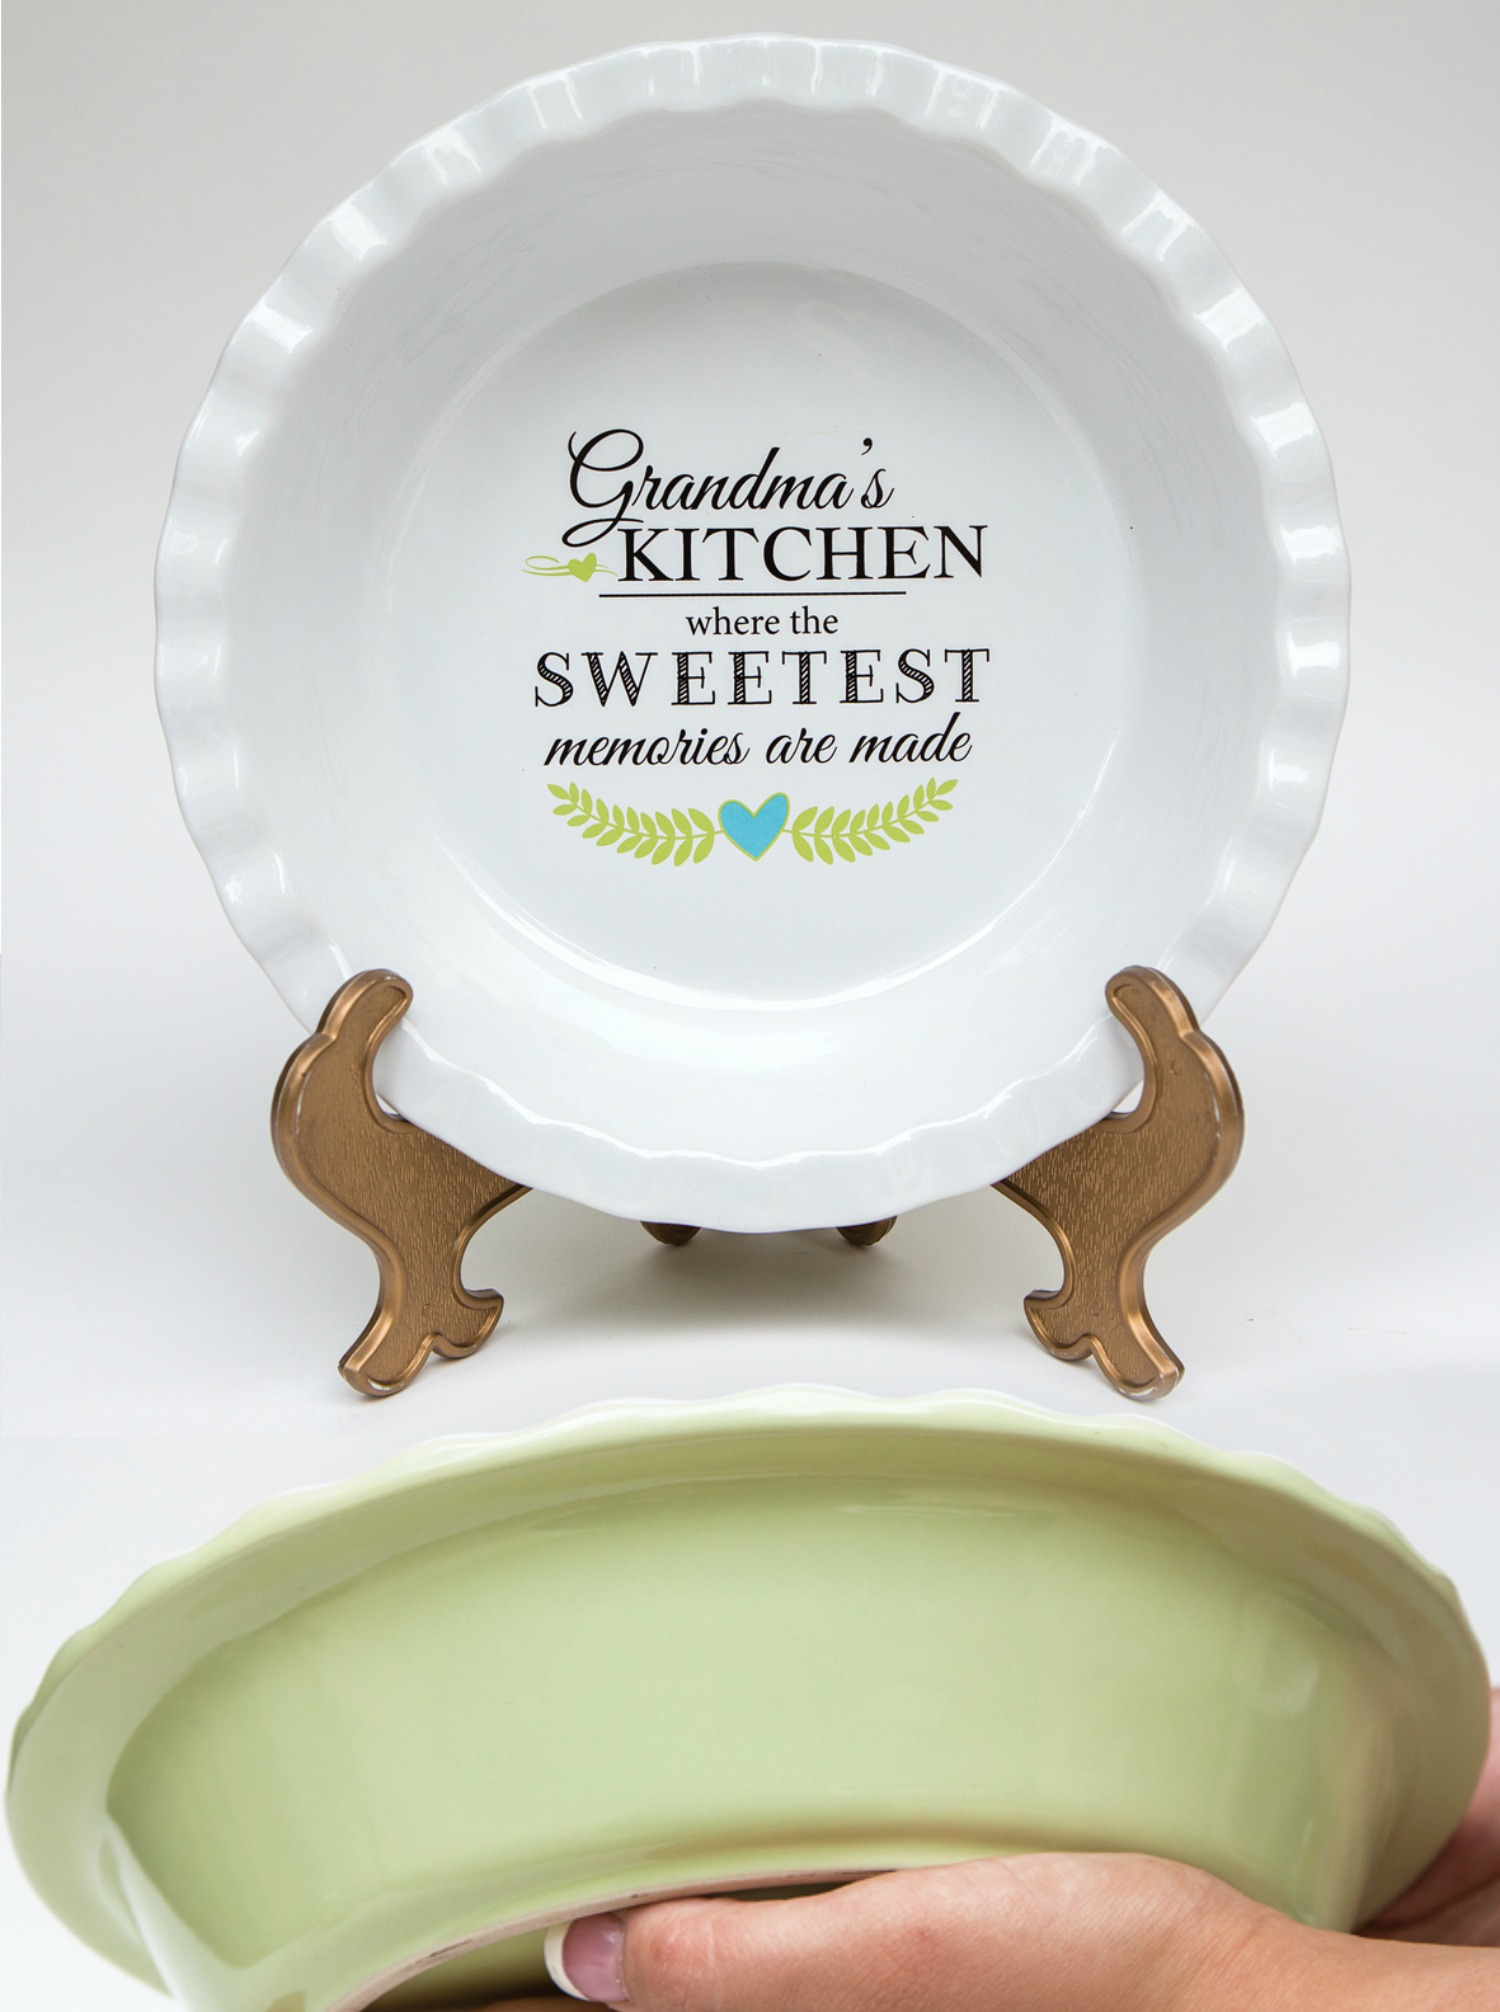 The Grandparent Gift Co. Pie Plates Review + Giveaway!